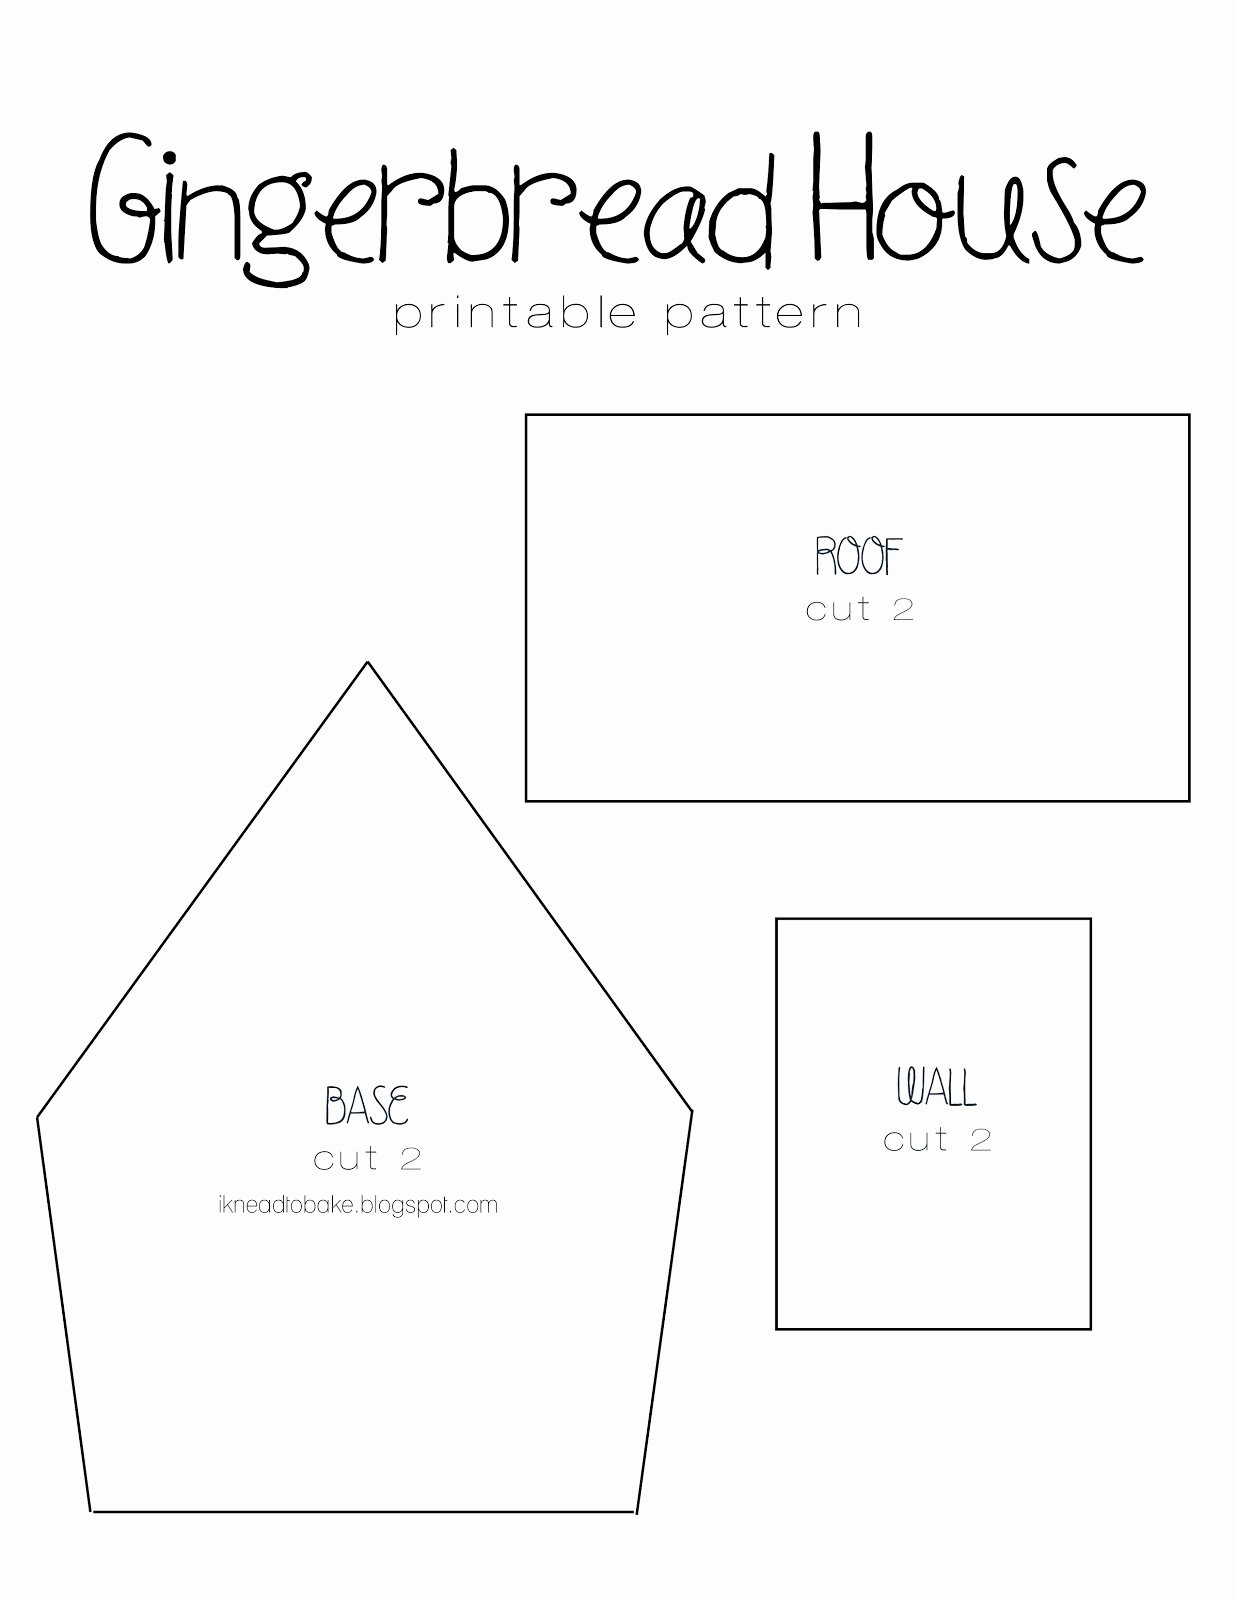 Ginger Bread House Patterns Elegant I Knead to Bake Gingerbread Recipe & Printable House Template